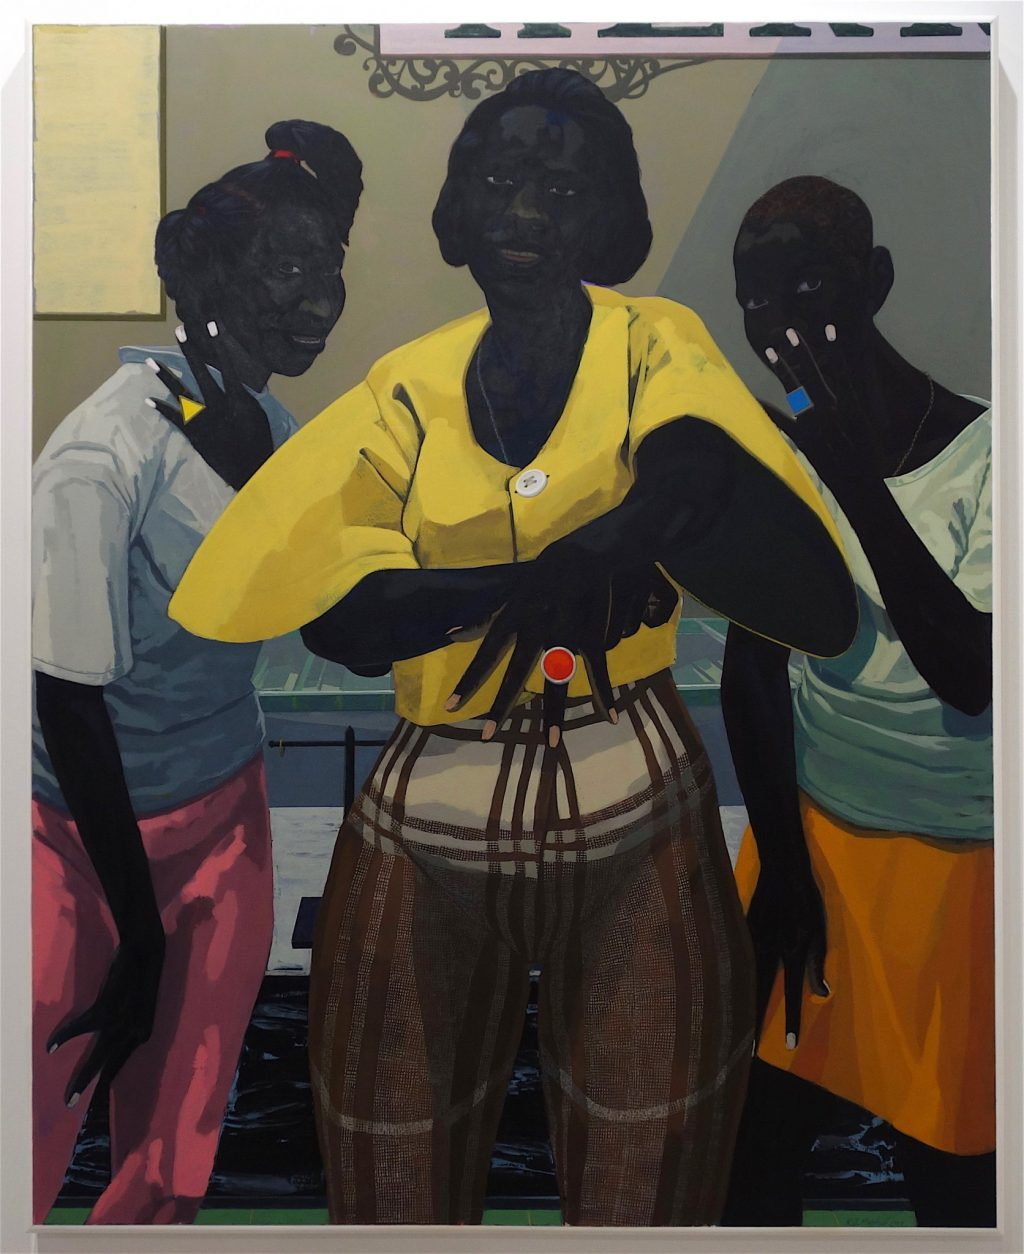 "Kerry James Marshall ""Untitled"" 2019, Acrylic on PVC panel, 60 x 40 inches @ JACK SHAMAN GALLERY, Art Basel 2019"